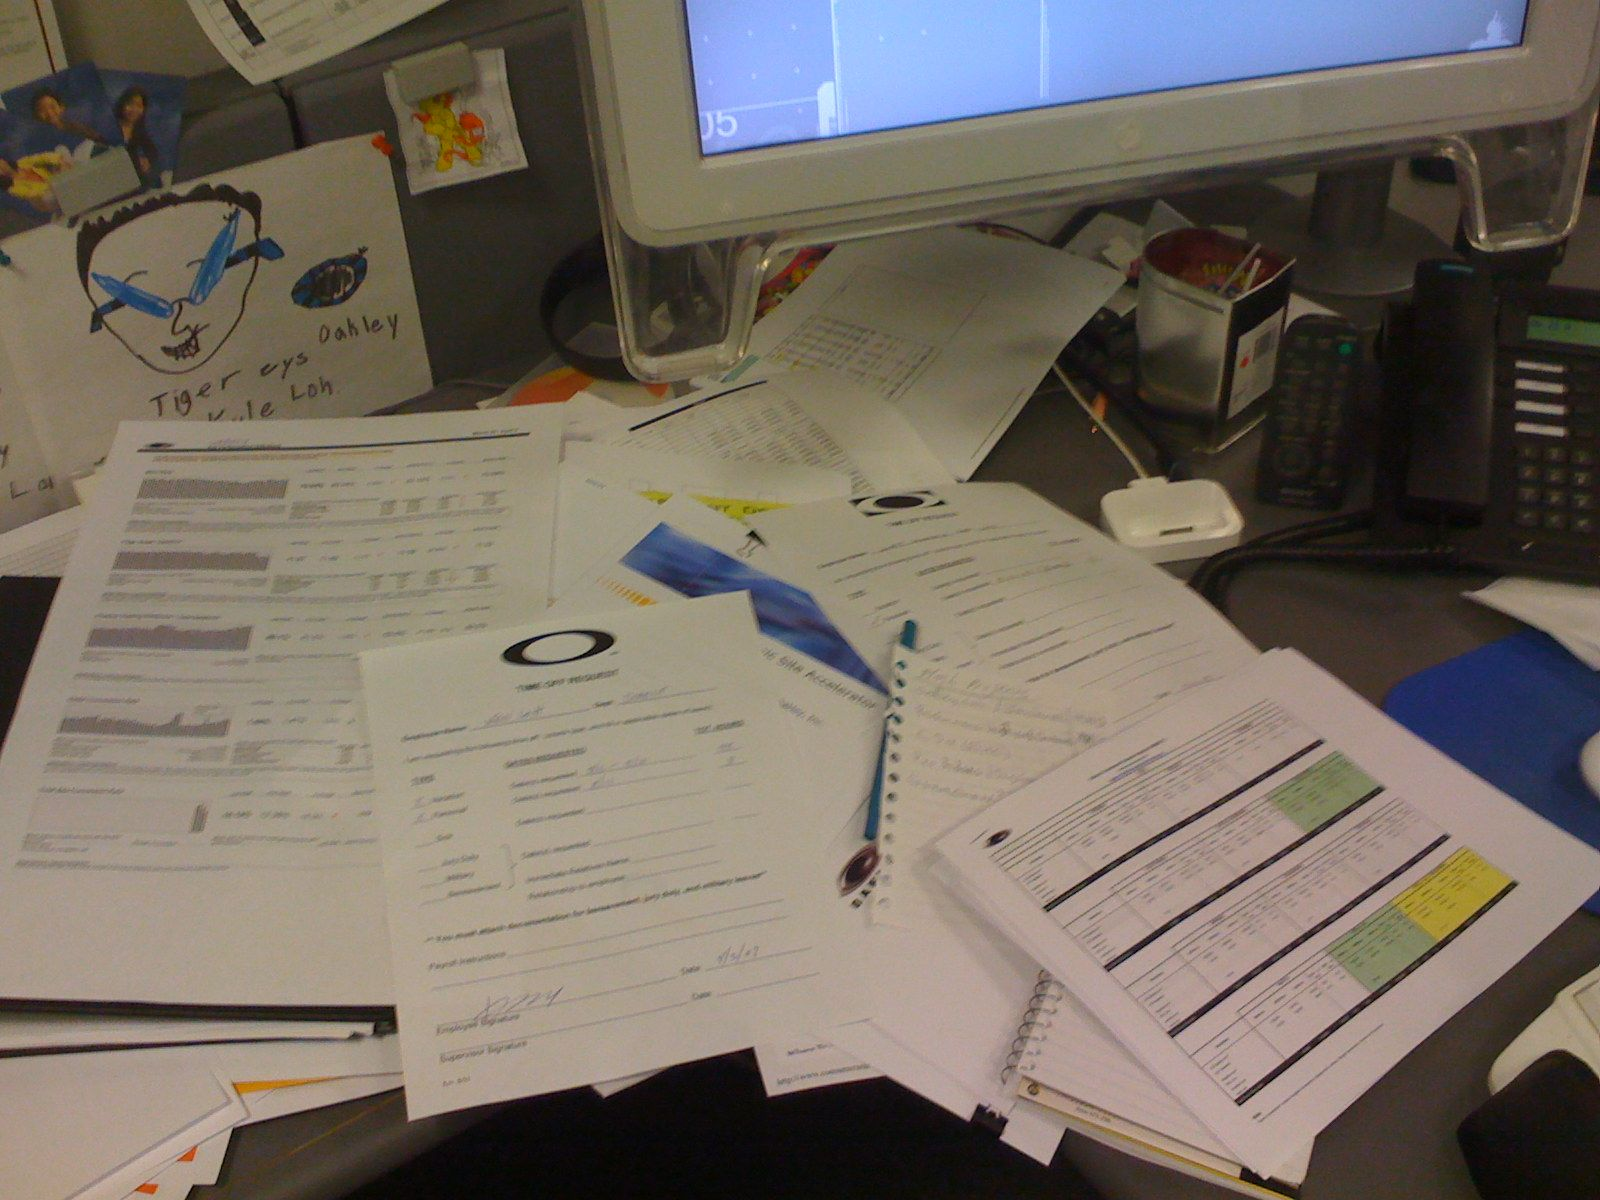 Really need to clean my desk. It's a disaster area